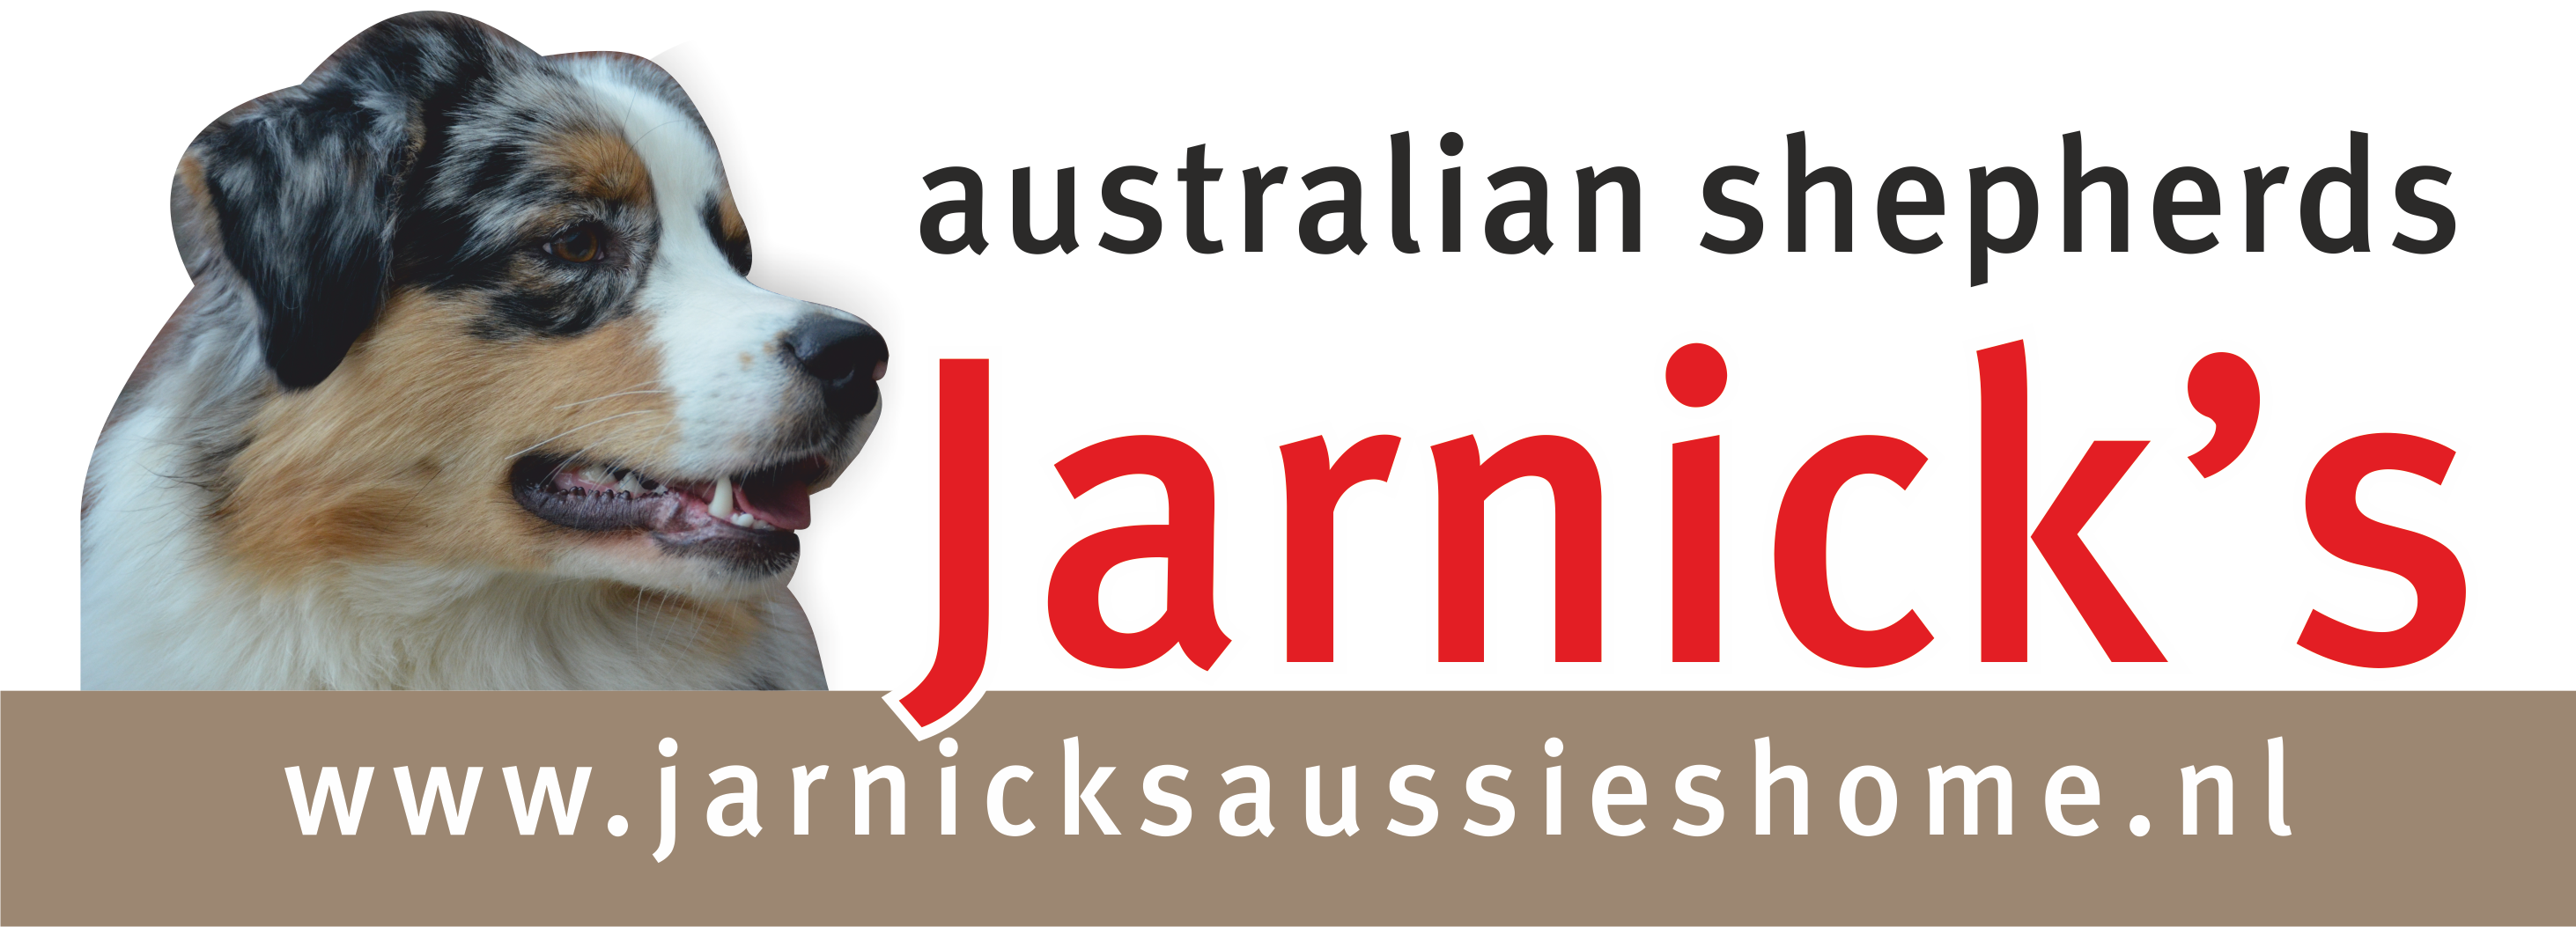 Jarnick's logo website